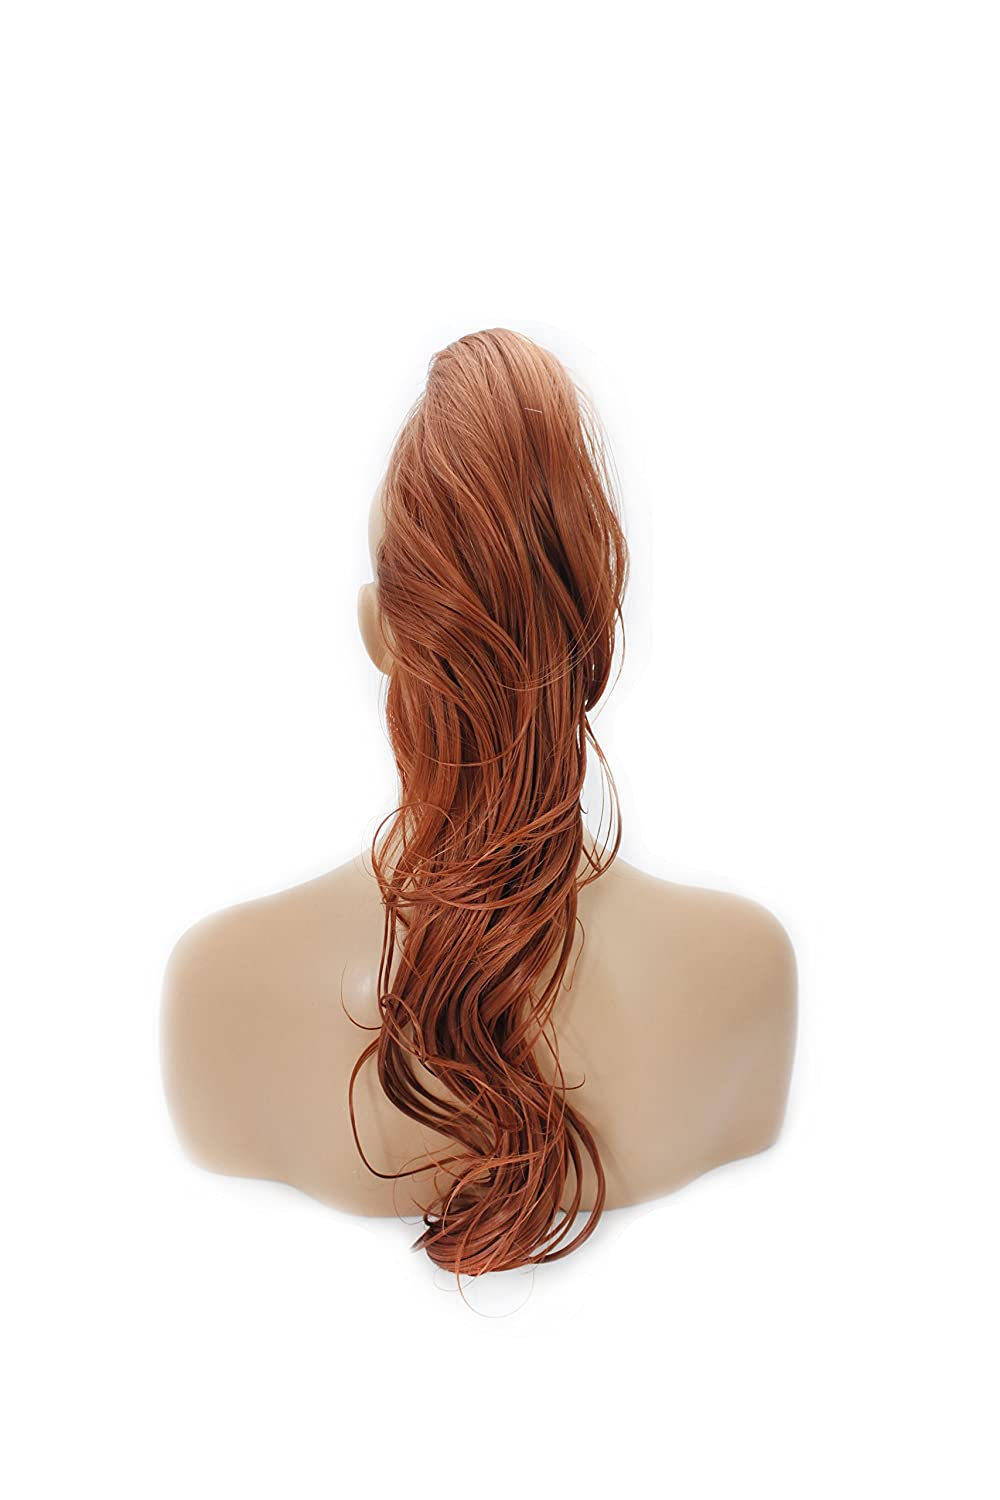 22 Ponytail - Flick - Copper #350 - Claw Clip Attachment - Reversible 2 Styles in 1 - Heat Resistant Synthetic Fibre - Clip in Hair Piece - Looks and Feels like Real Hair - 200g by Elegant Hair